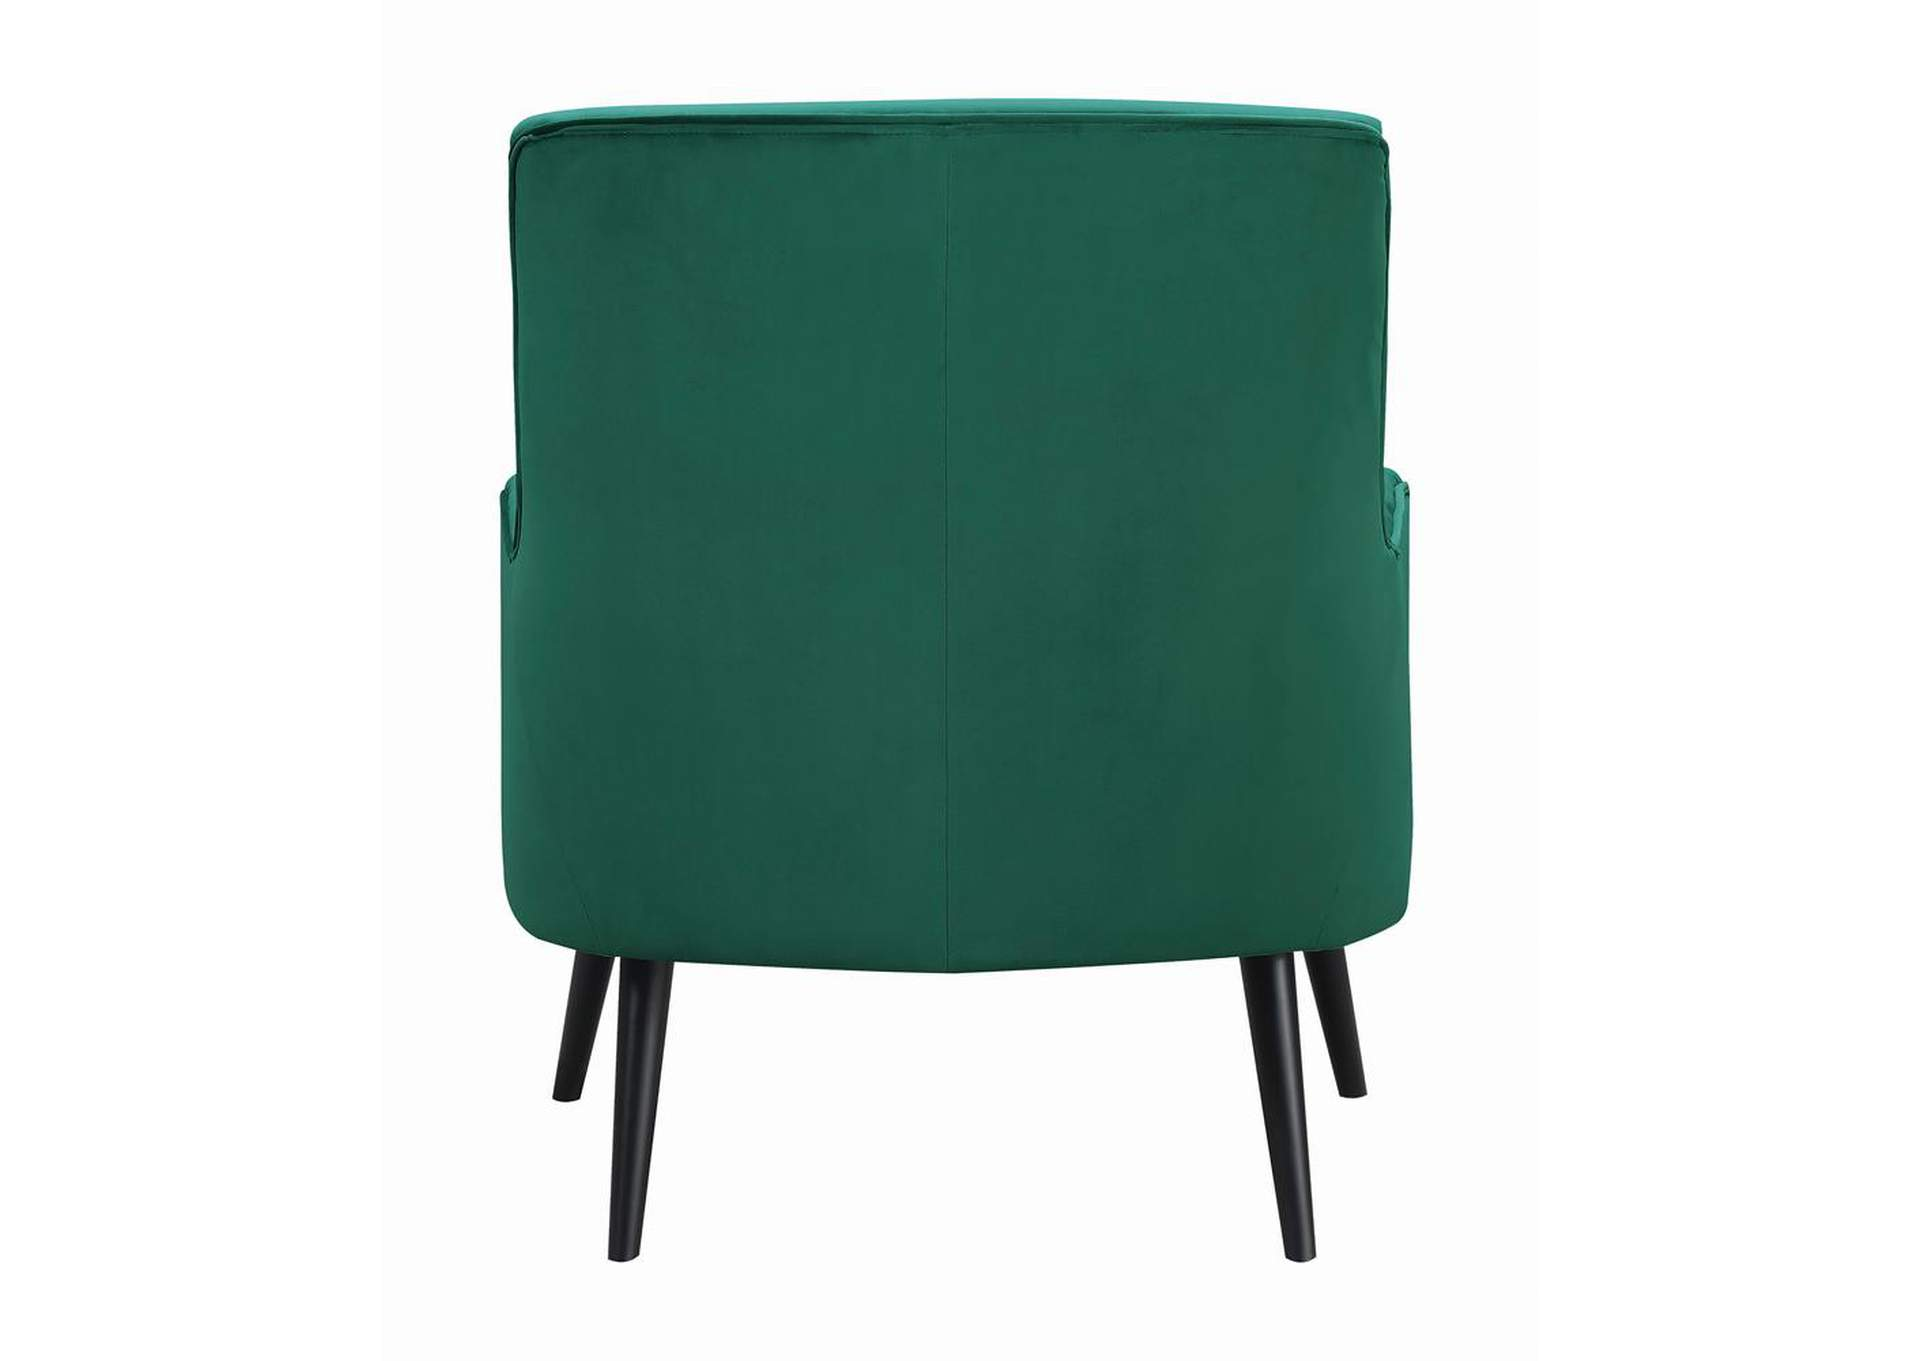 Green Upholstered Chair Jarons Green Upholstered Accent Chair